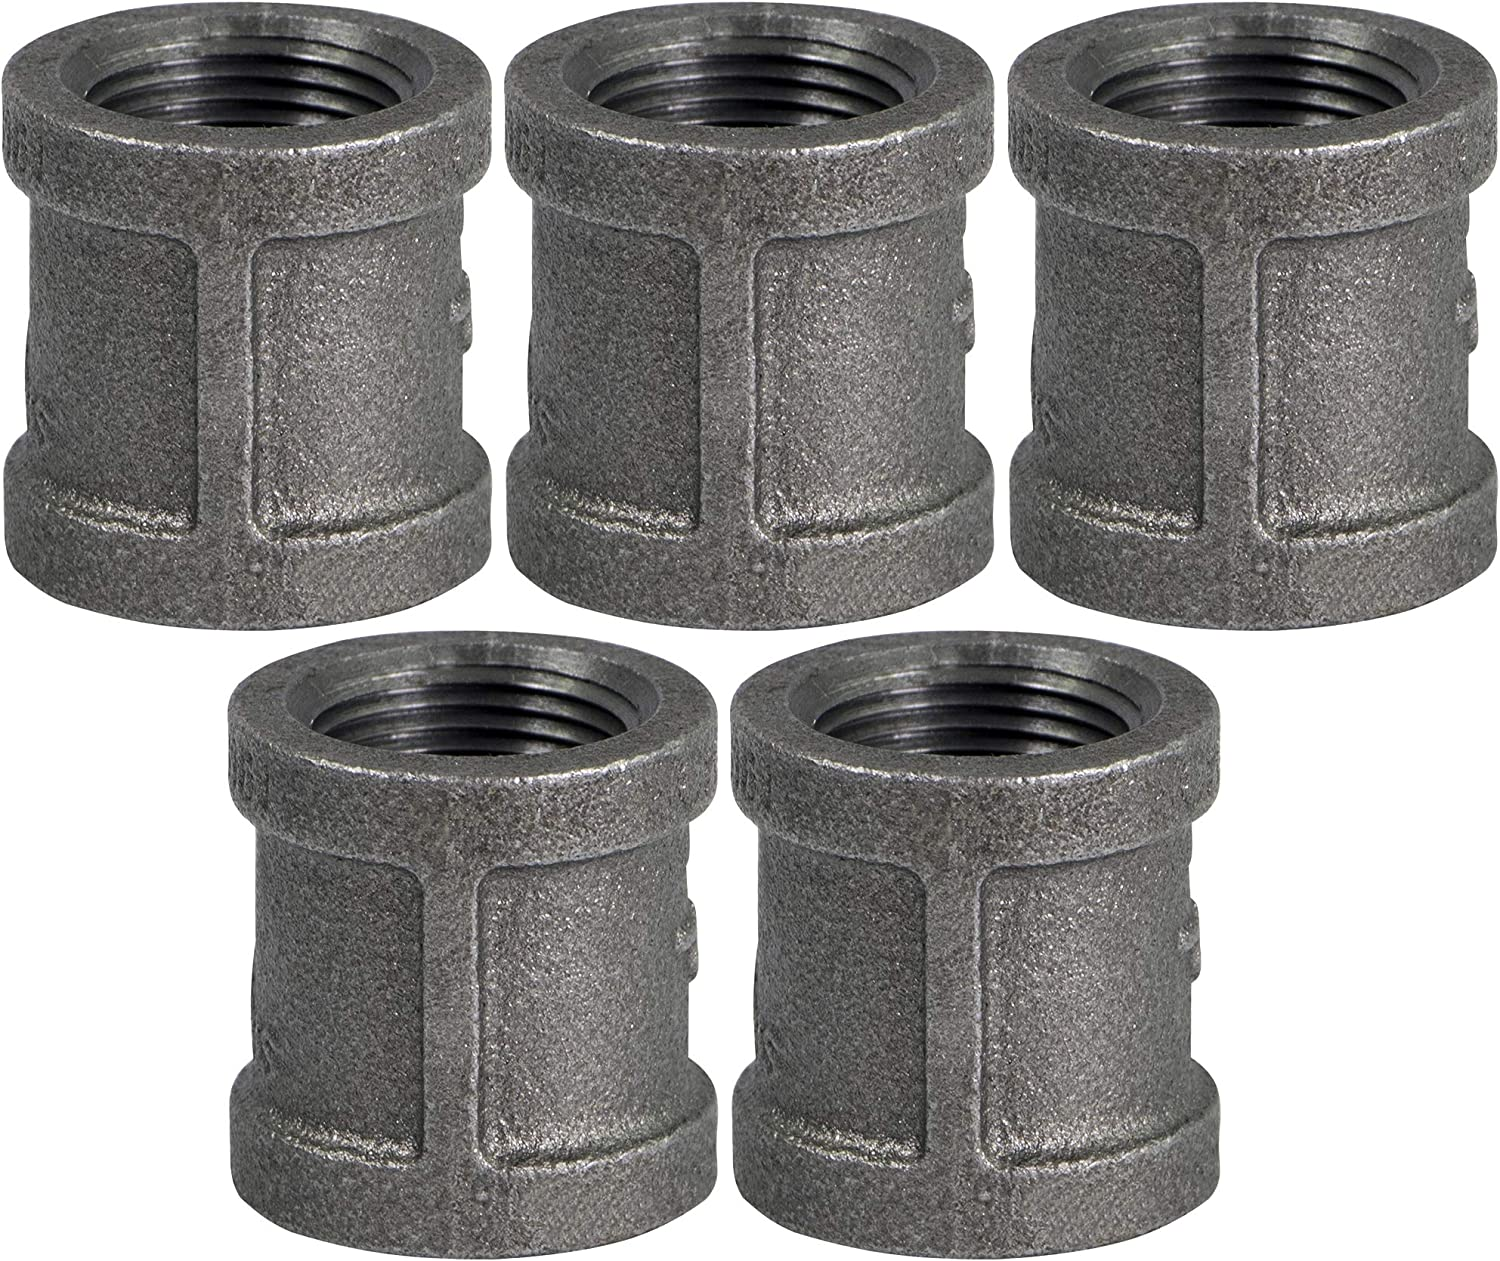 SUPPLY GIANT Online limited product 4 years warranty BMCPL300-5 coupling Inch 3 Black